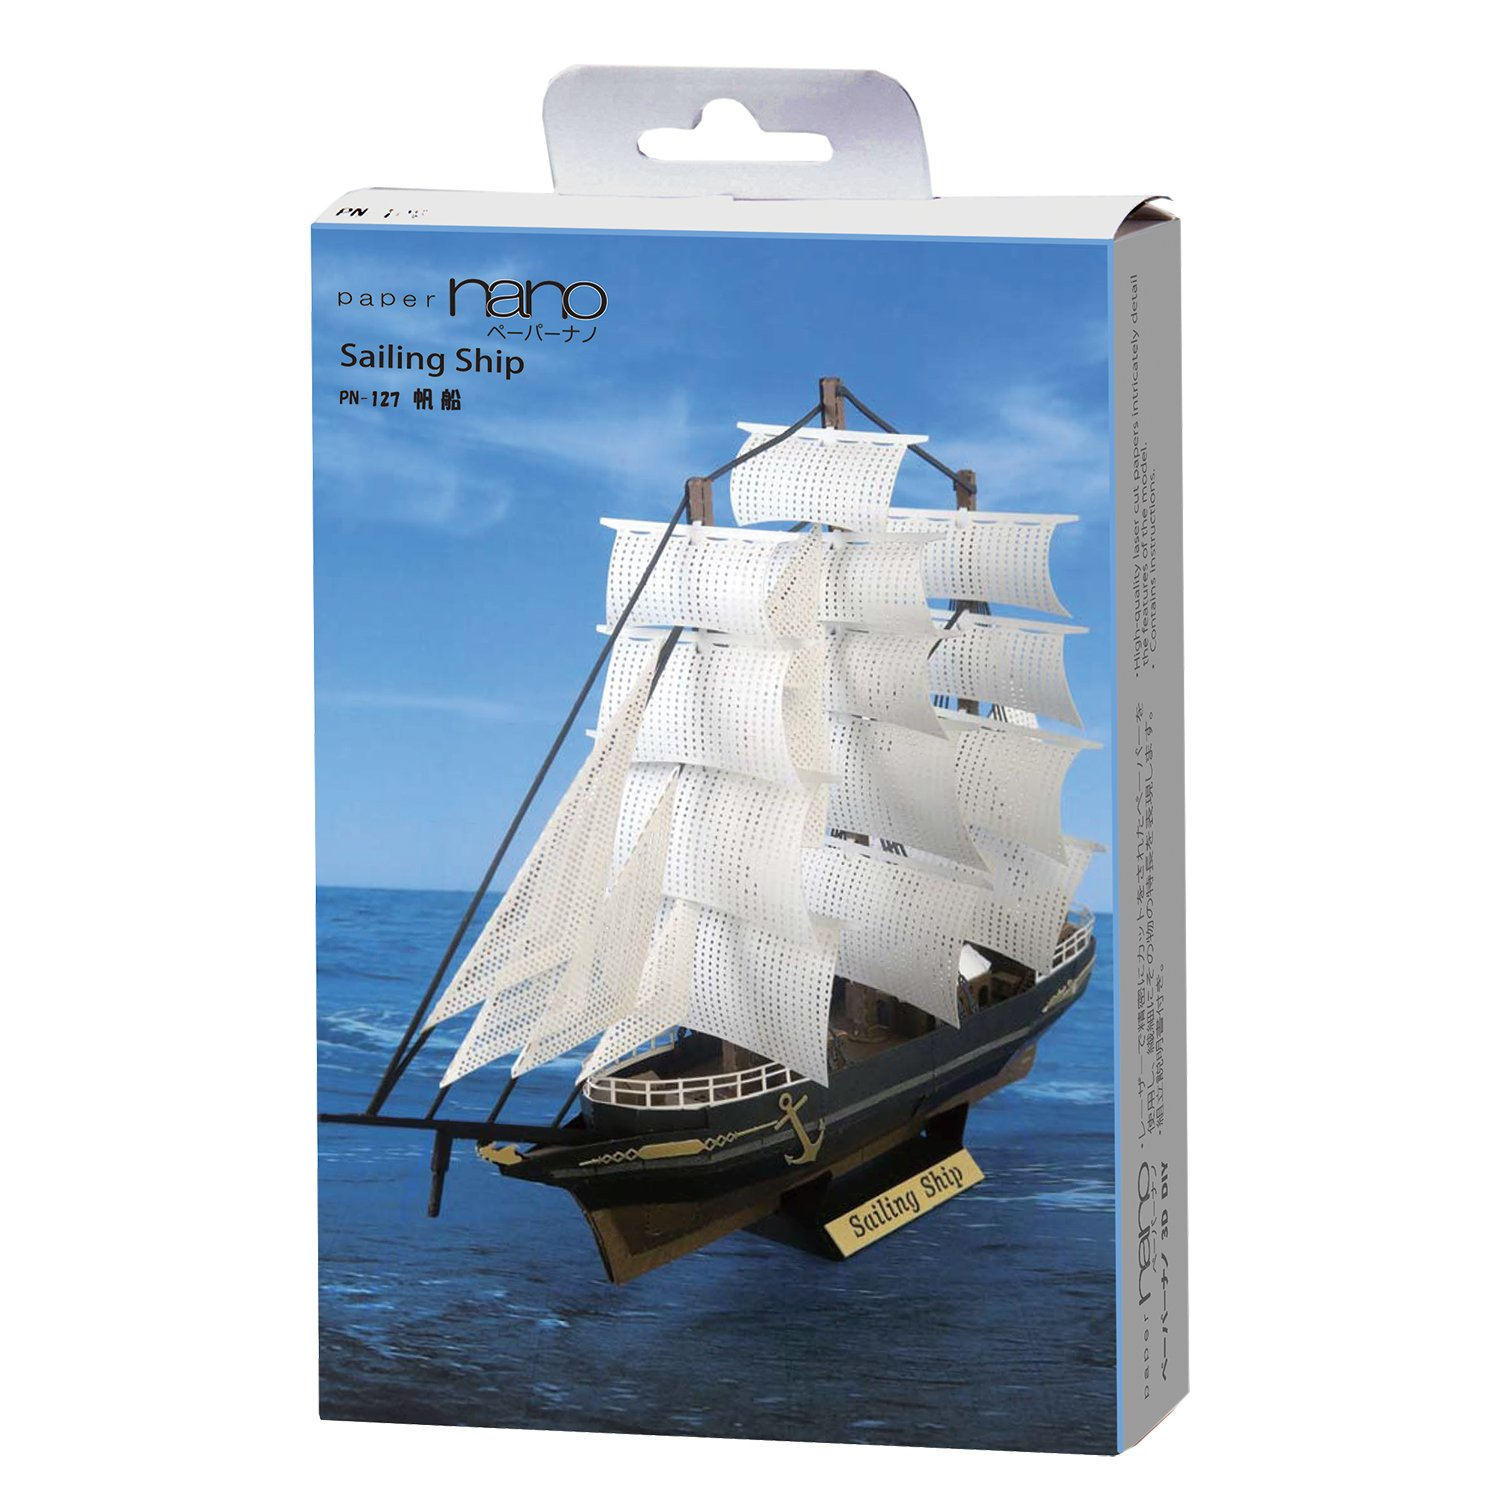 Paper Nano Sailing Ship Building Set Tegu Toys PN127